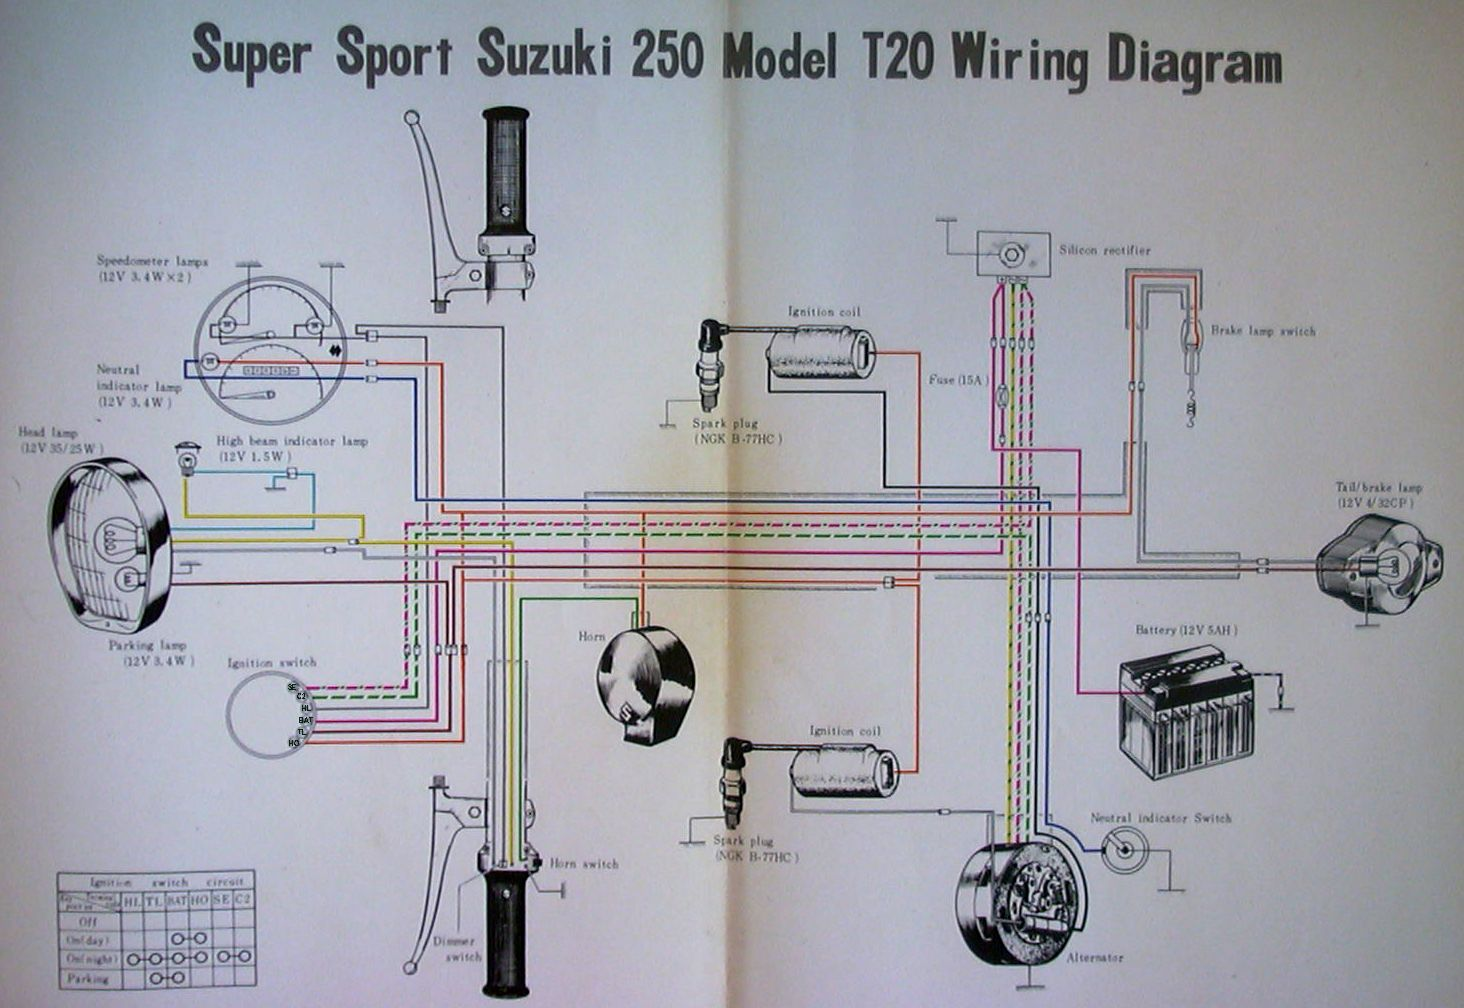 hight resolution of suzuki multicab wiring diagram